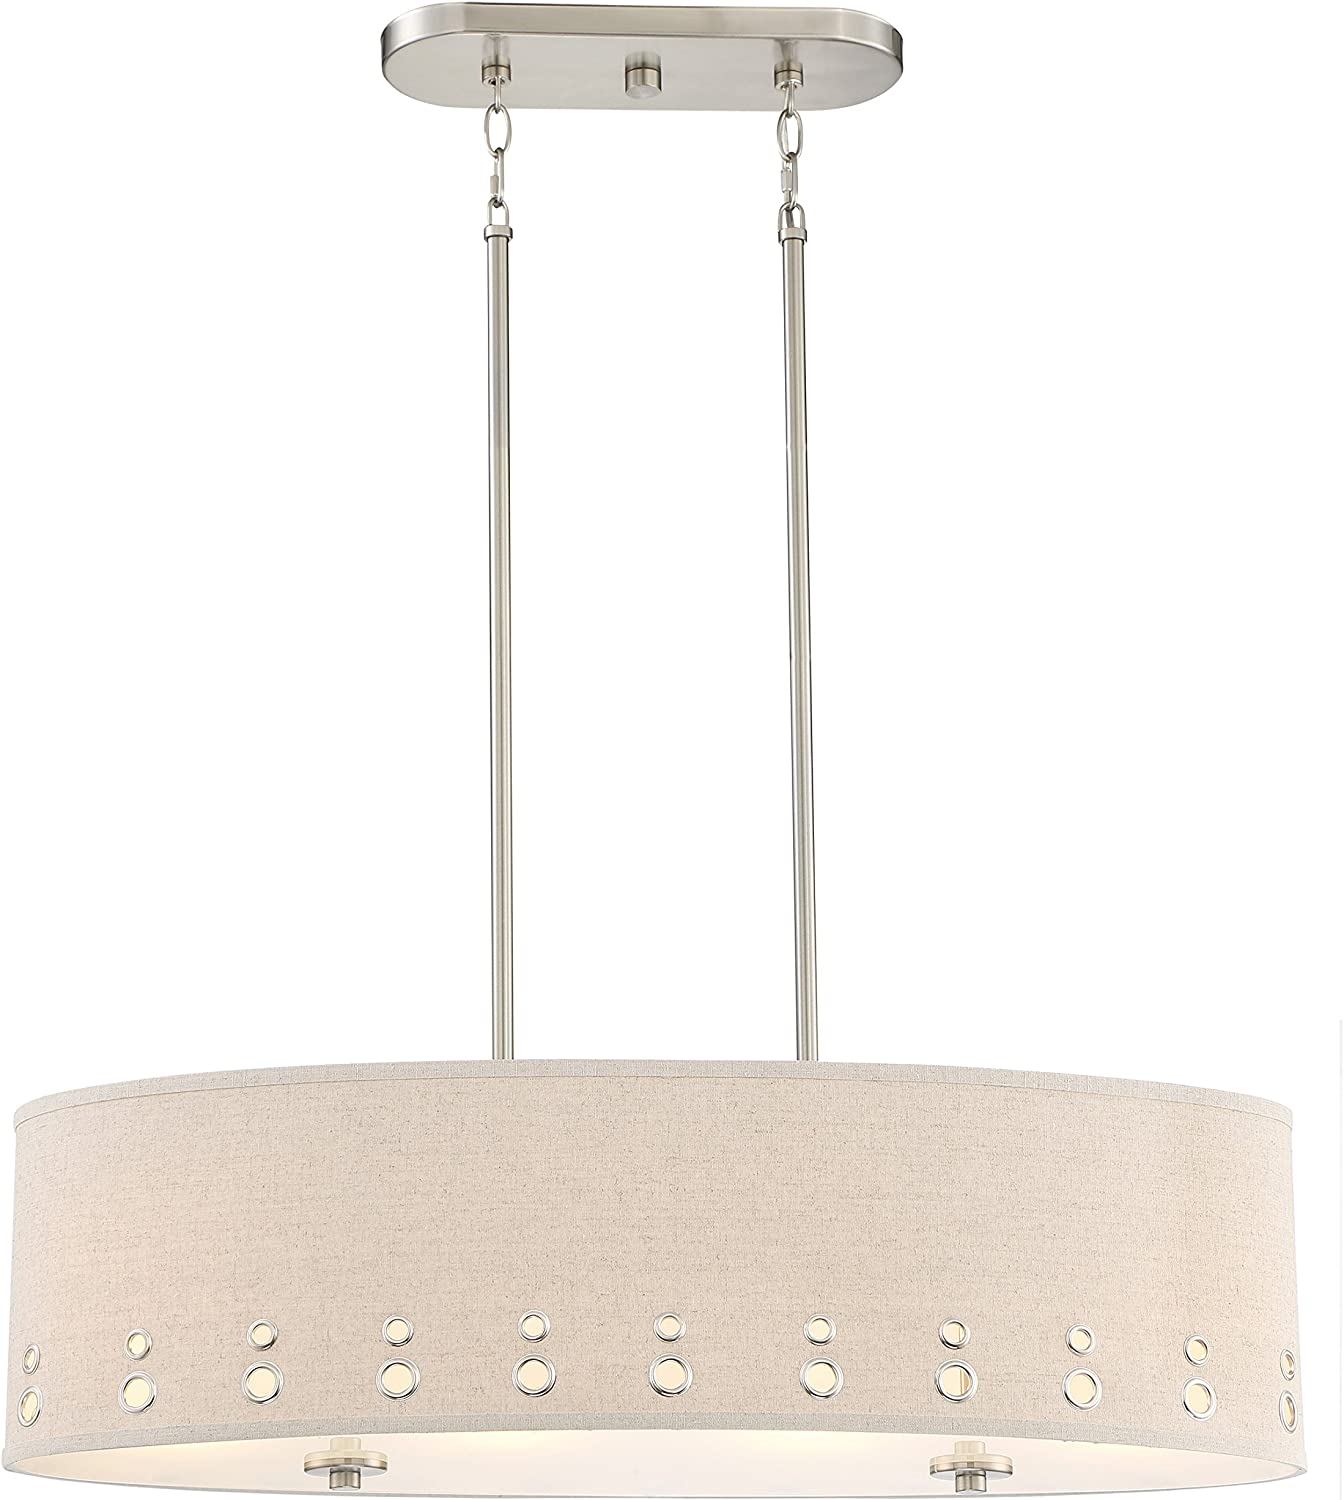 Quoizel LWS3233B1 Park Avenue Beige Linen Drum Pendant Ceiling Lighting, 4-Light, 400 Watts, Brushed Nickel 11 H x 33 W